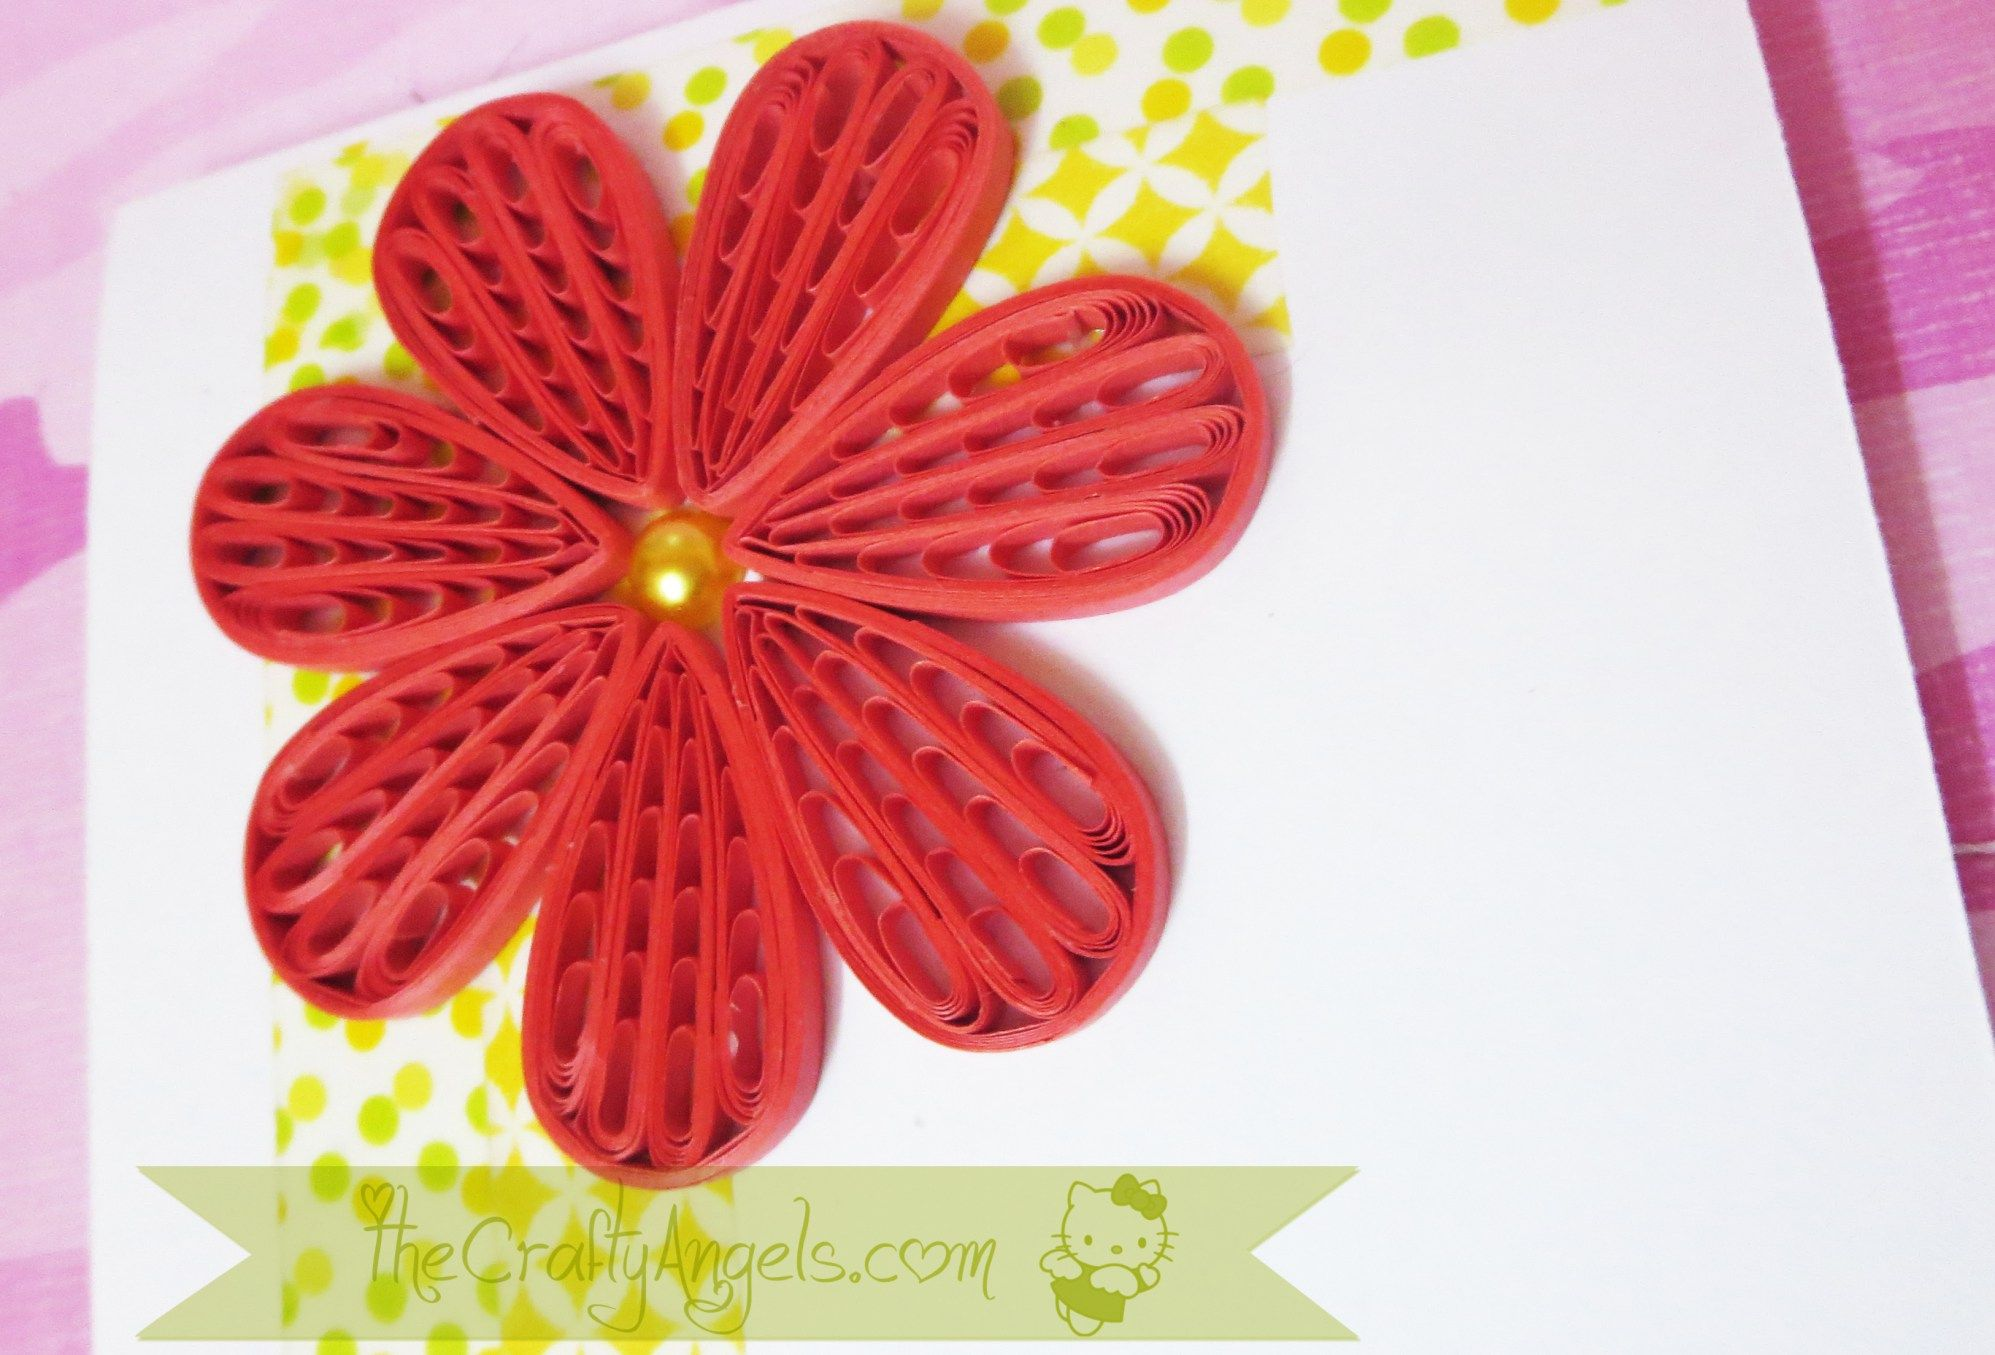 Quilling comb flower tutorial (18) | Rainy Days | Pinterest ... for quilling flowers using comb tutorial  545xkb